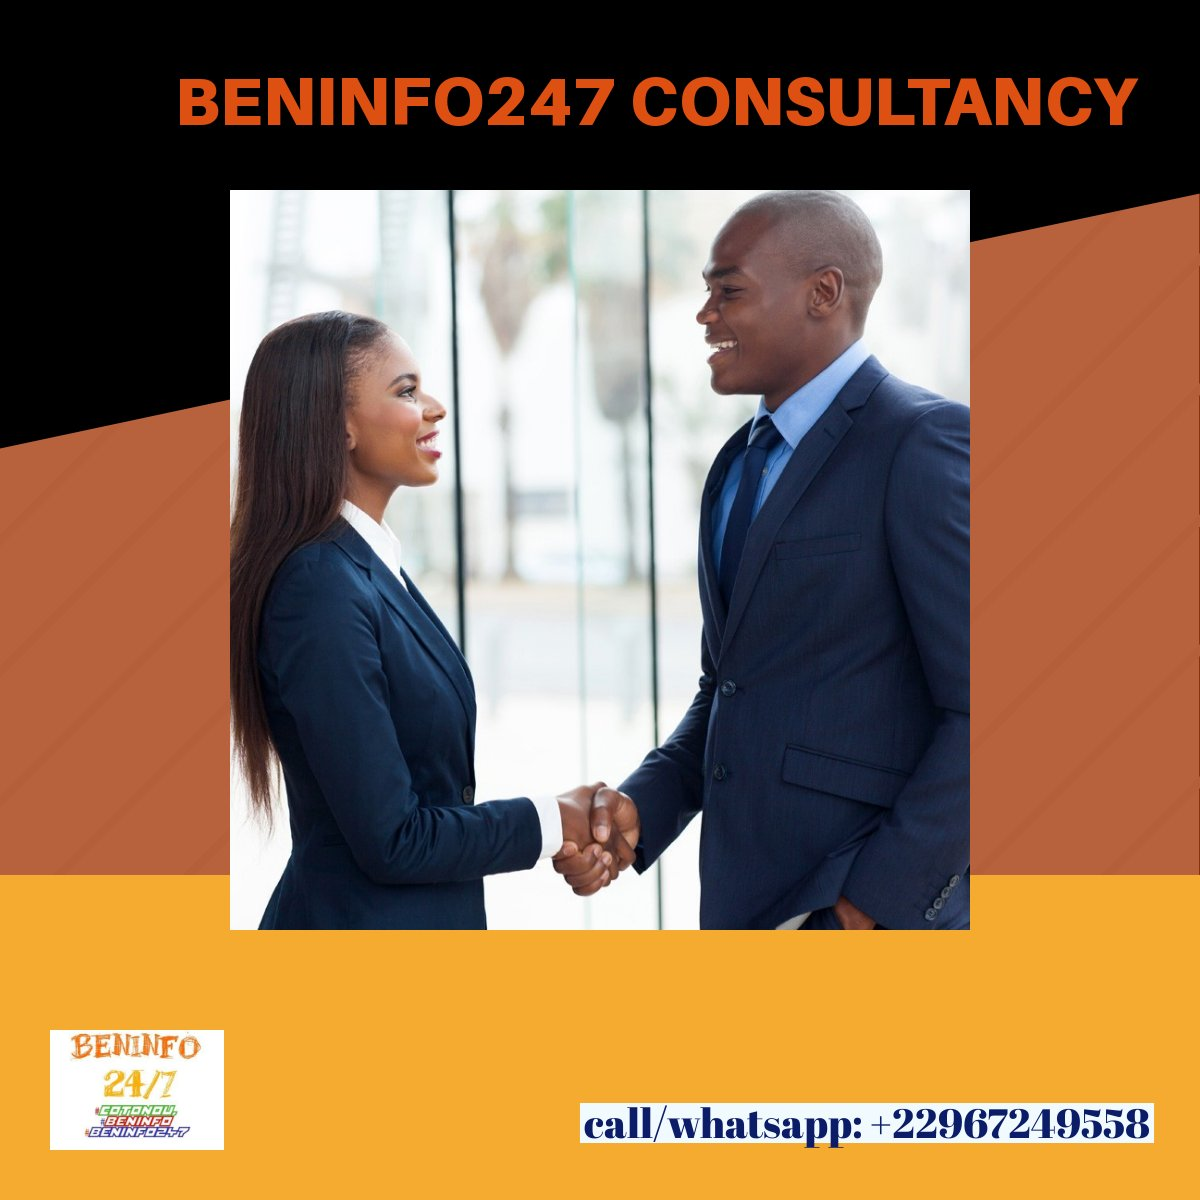 CONSULTANTS JOB DESCRIPTION- BENINFO247